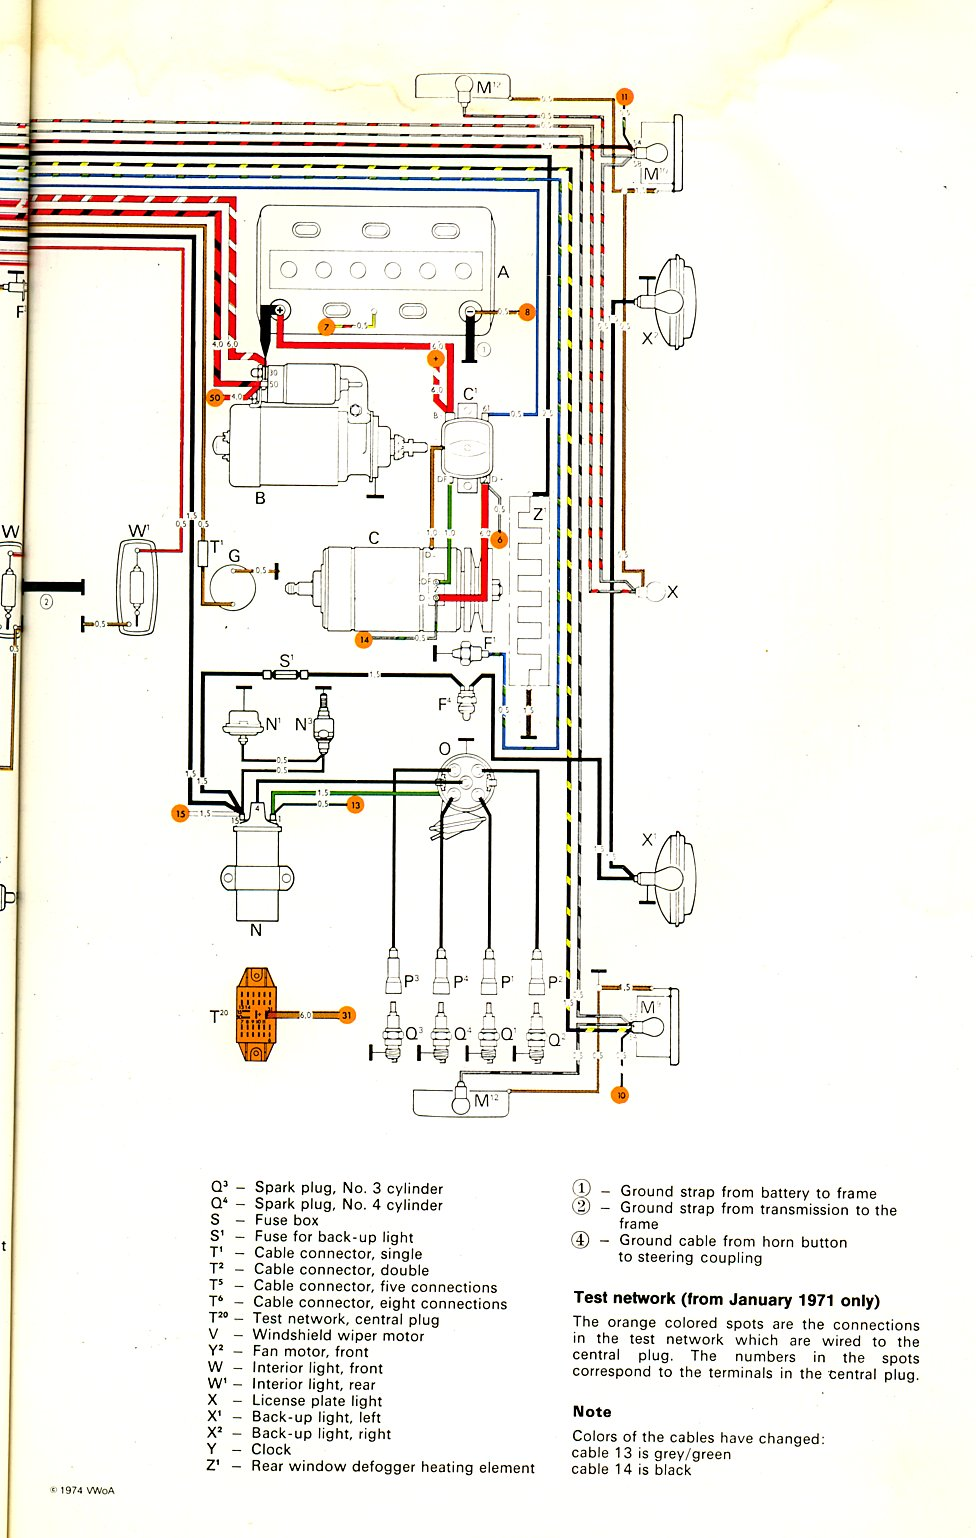 baybus_71b thesamba com type 2 wiring diagrams 1971 corvette wiring diagram at panicattacktreatment.co